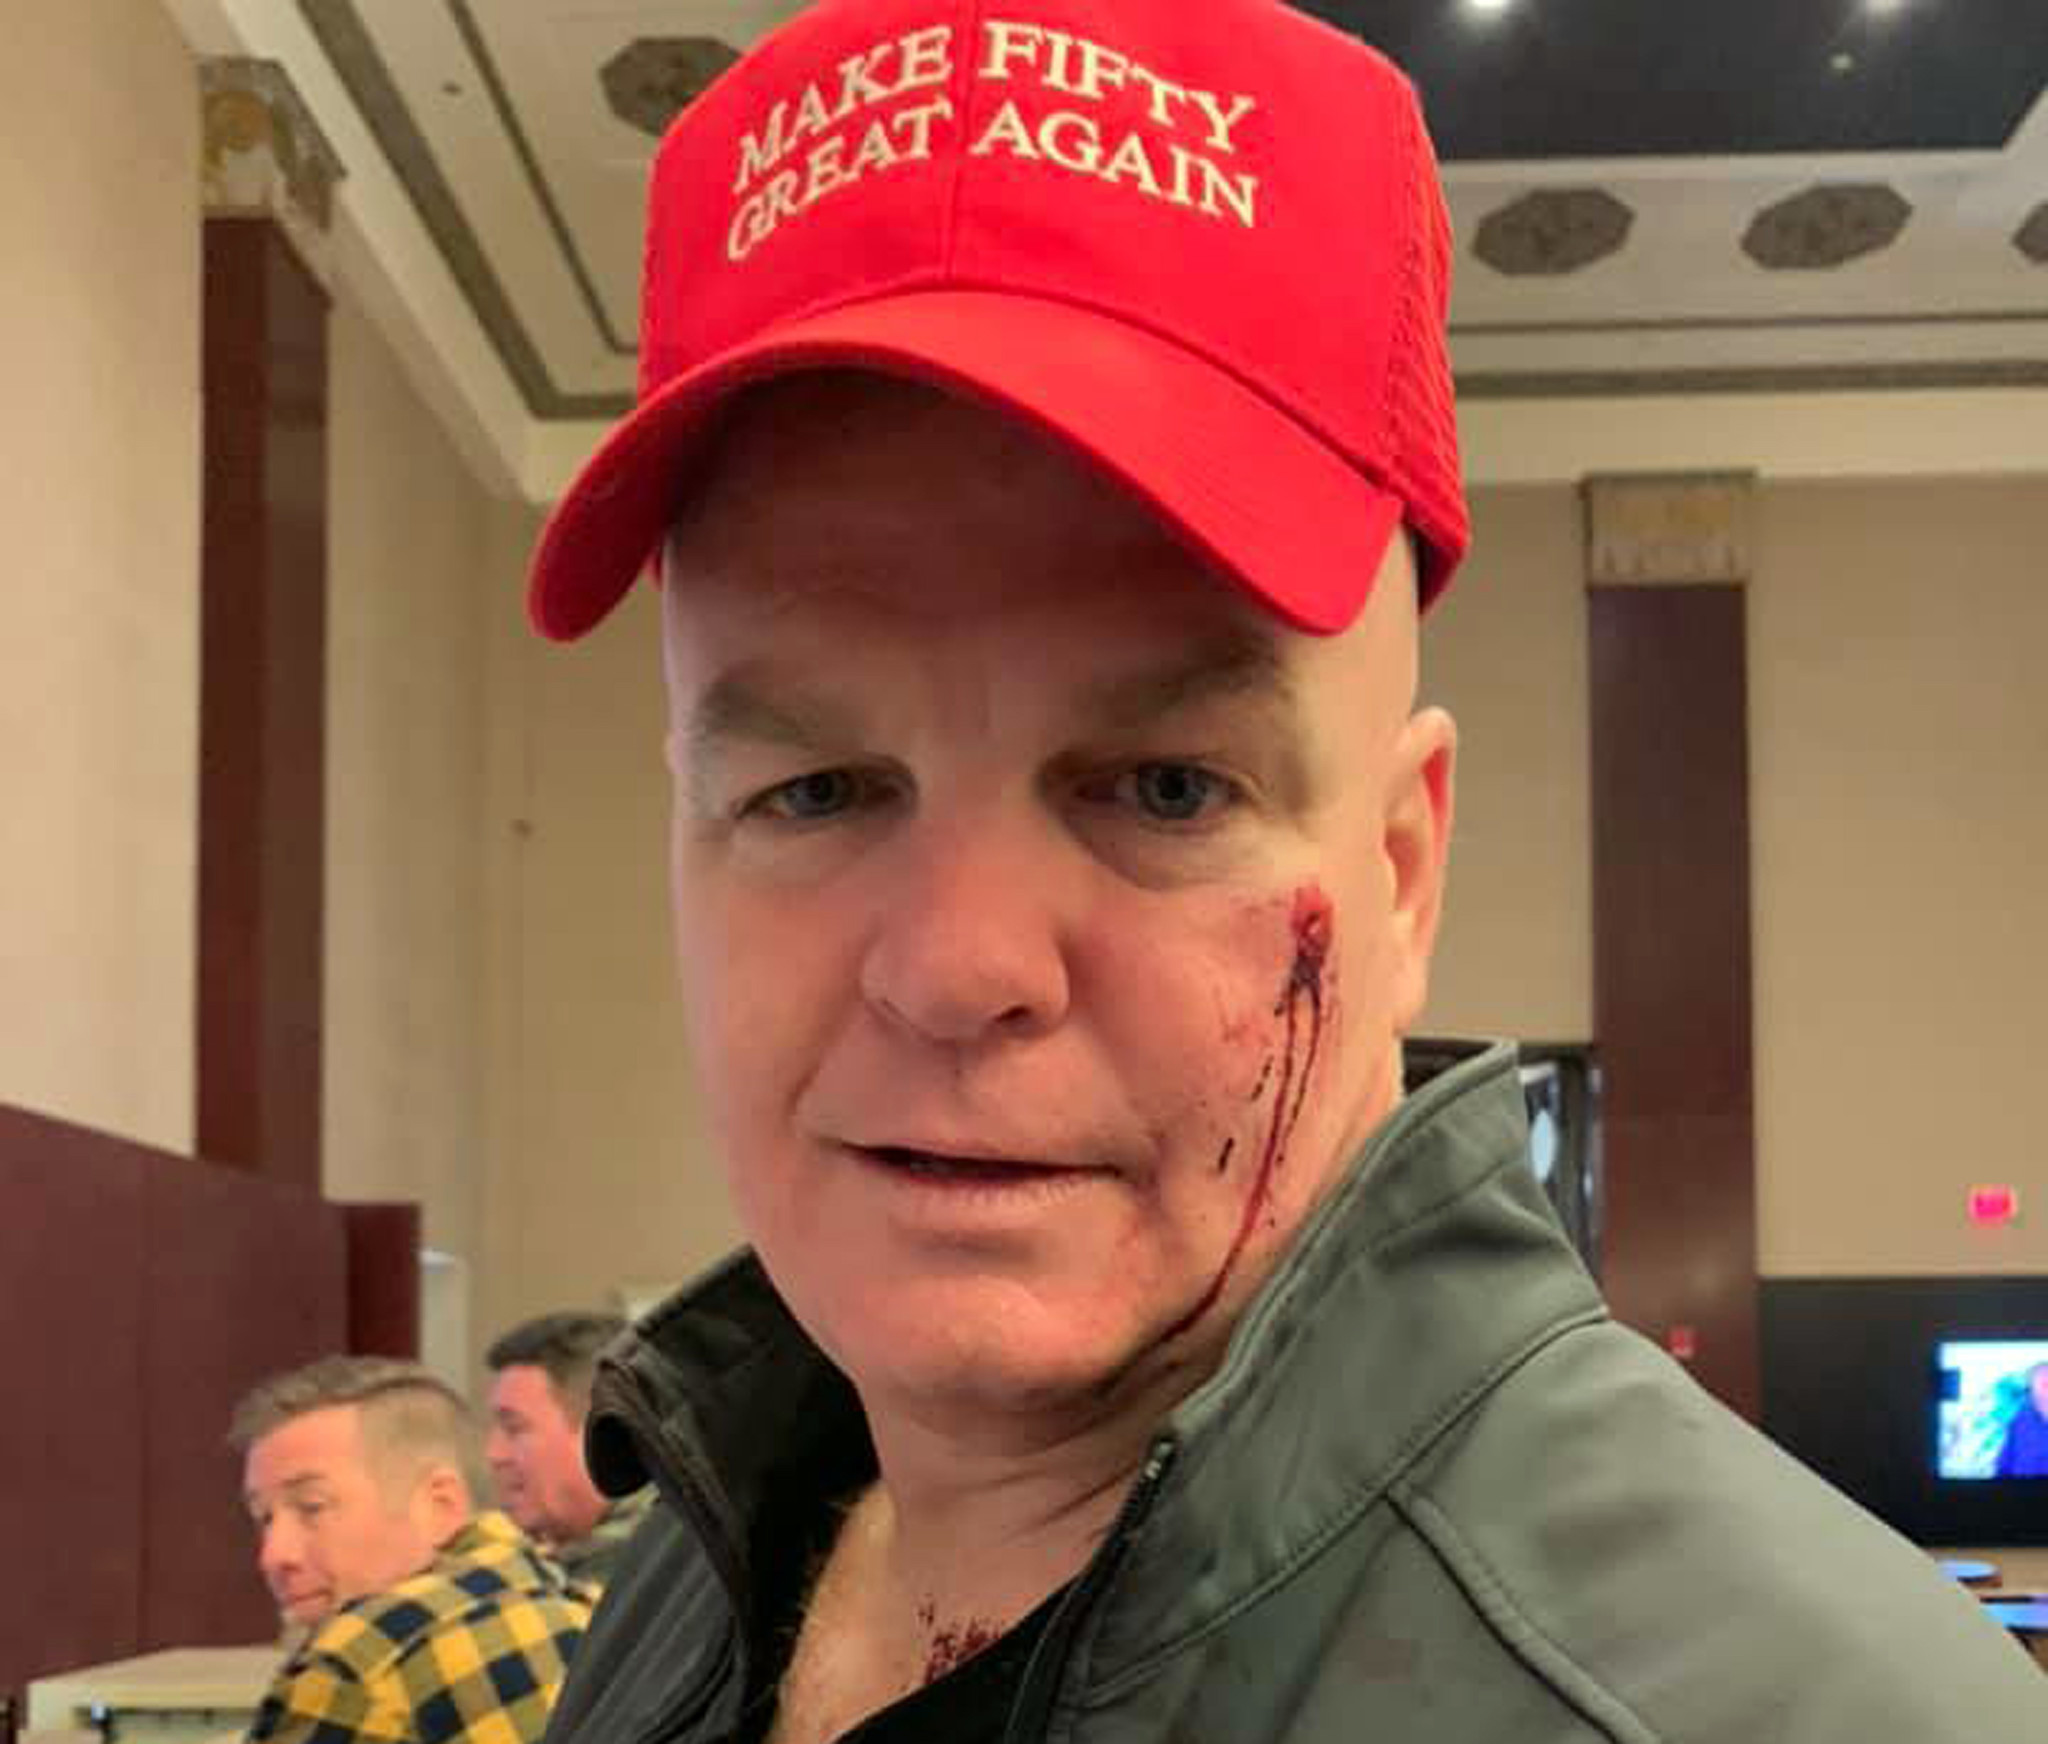 Retired NYPD cop says woman punched him in face over 'Make Fifty Great Again' birthday hat